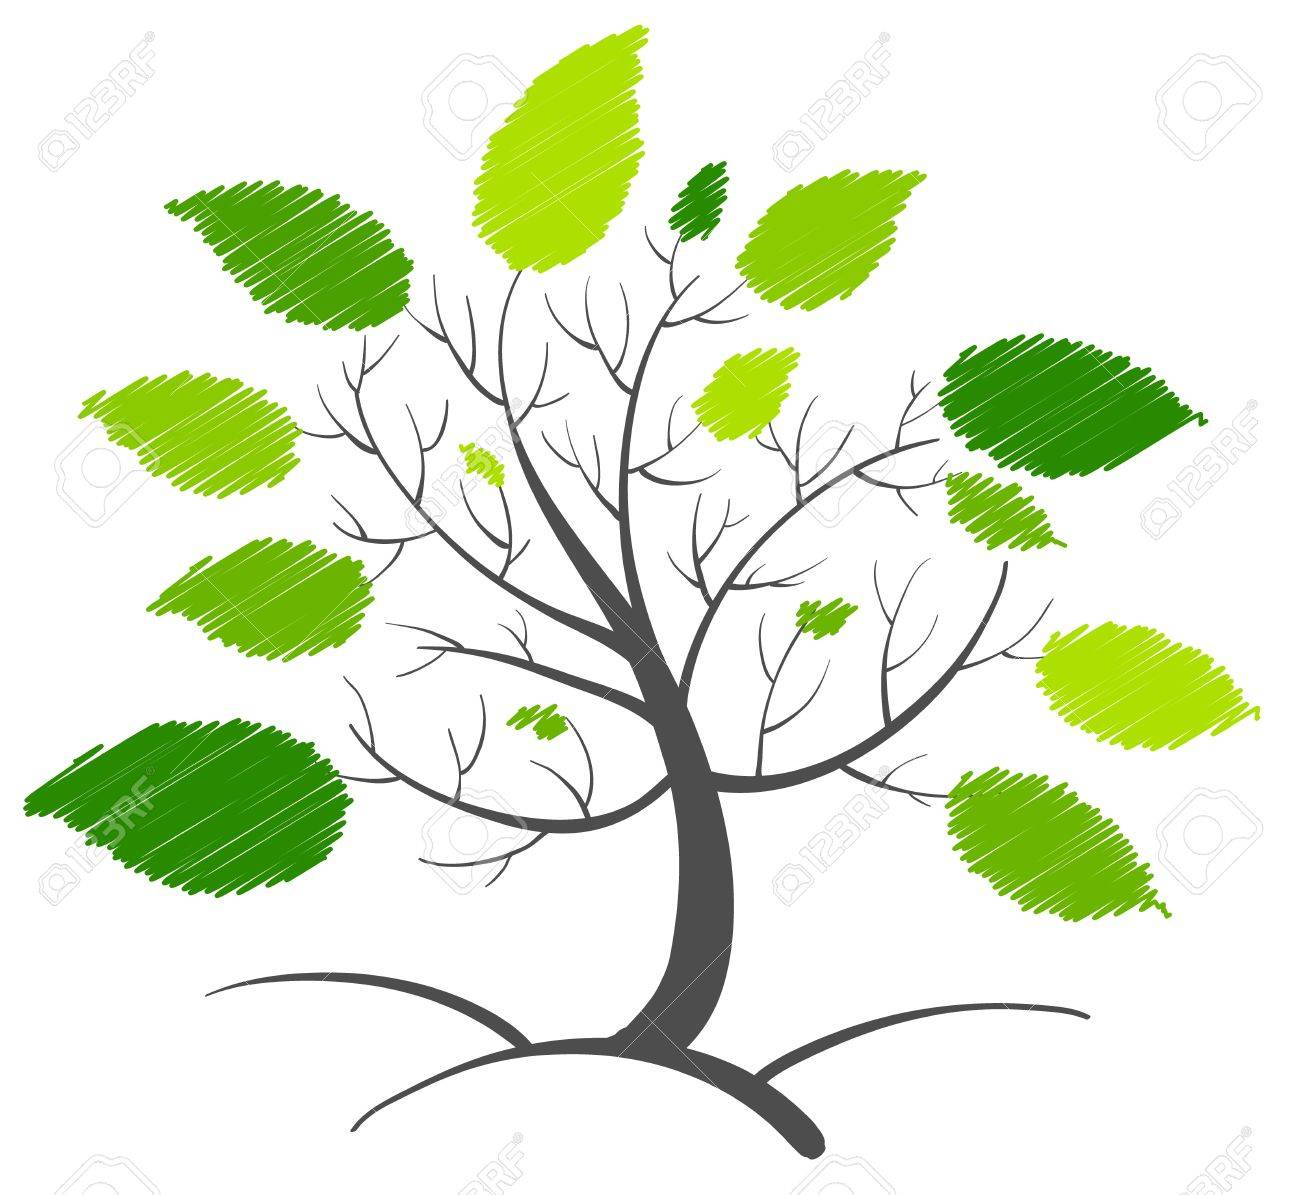 Illustration of an abstract tree concept Stock Vector - 13832233